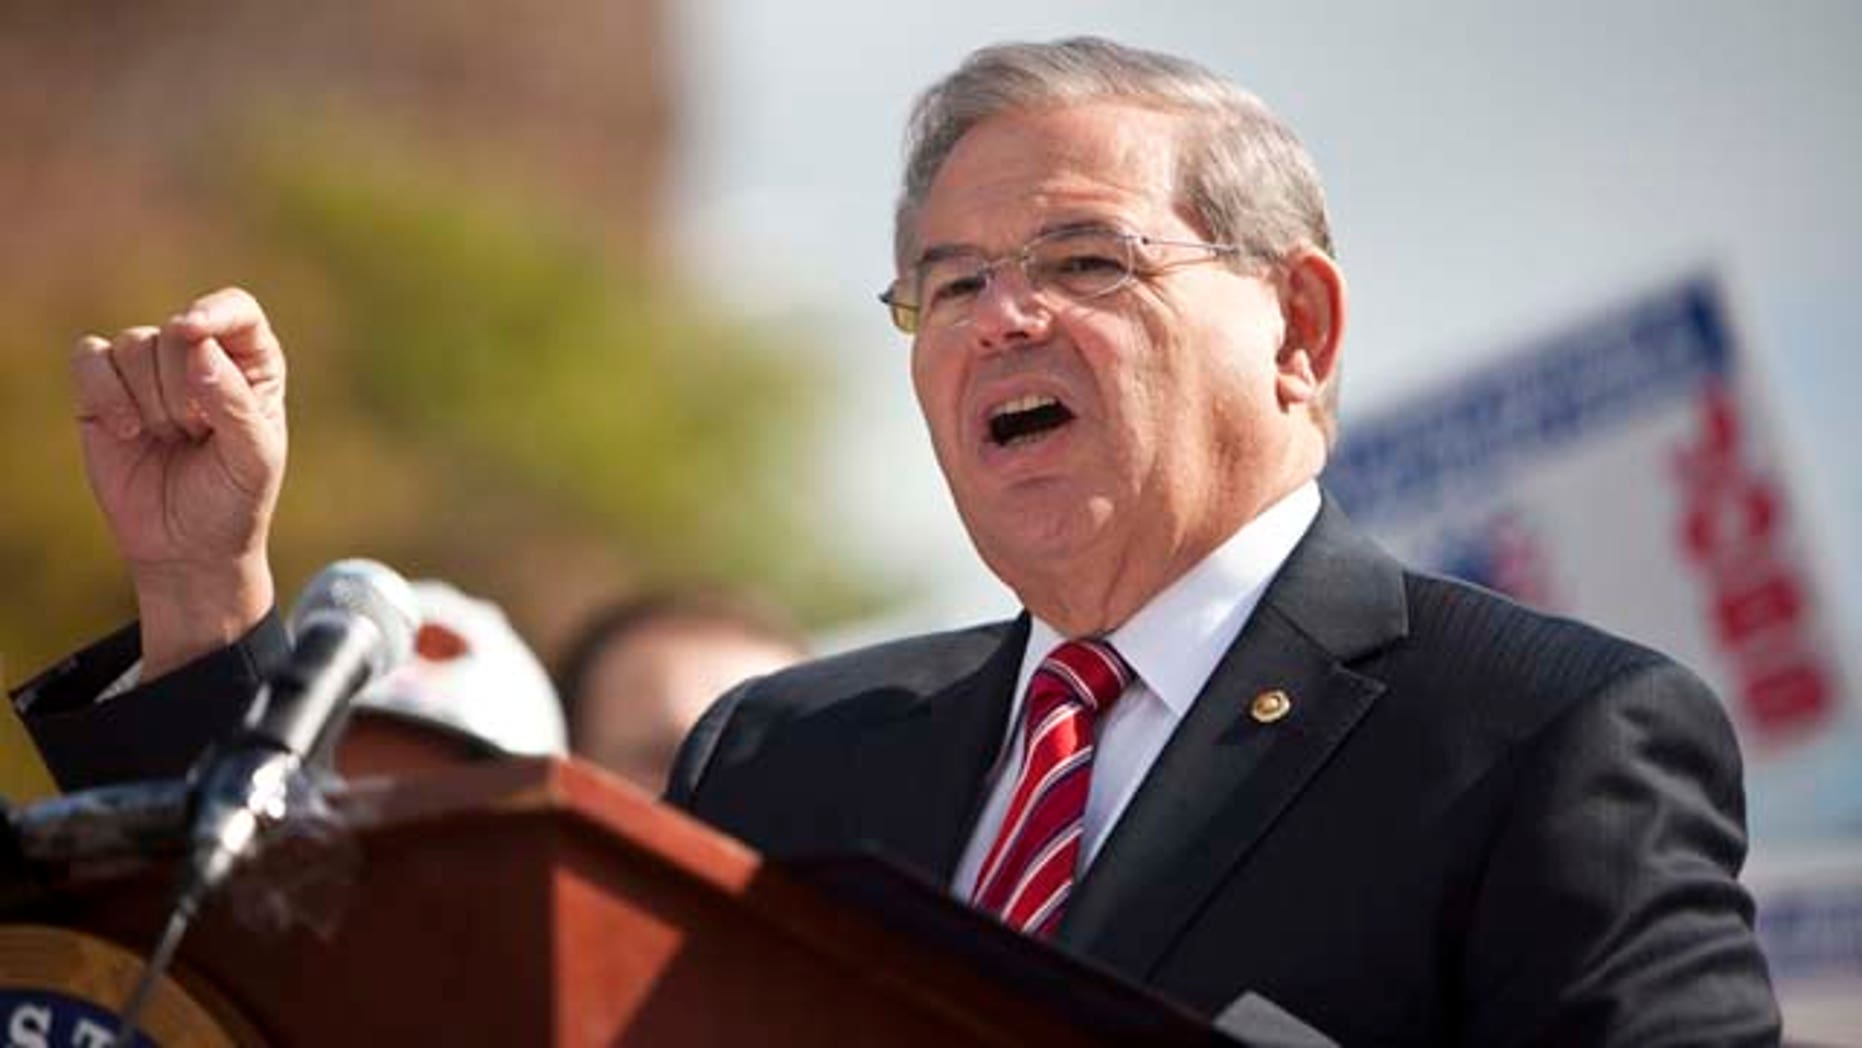 Sen. Robert Menendez (D-NJ) speaks to a group of labor unions during a rally last year in North Bergen, New Jersey.